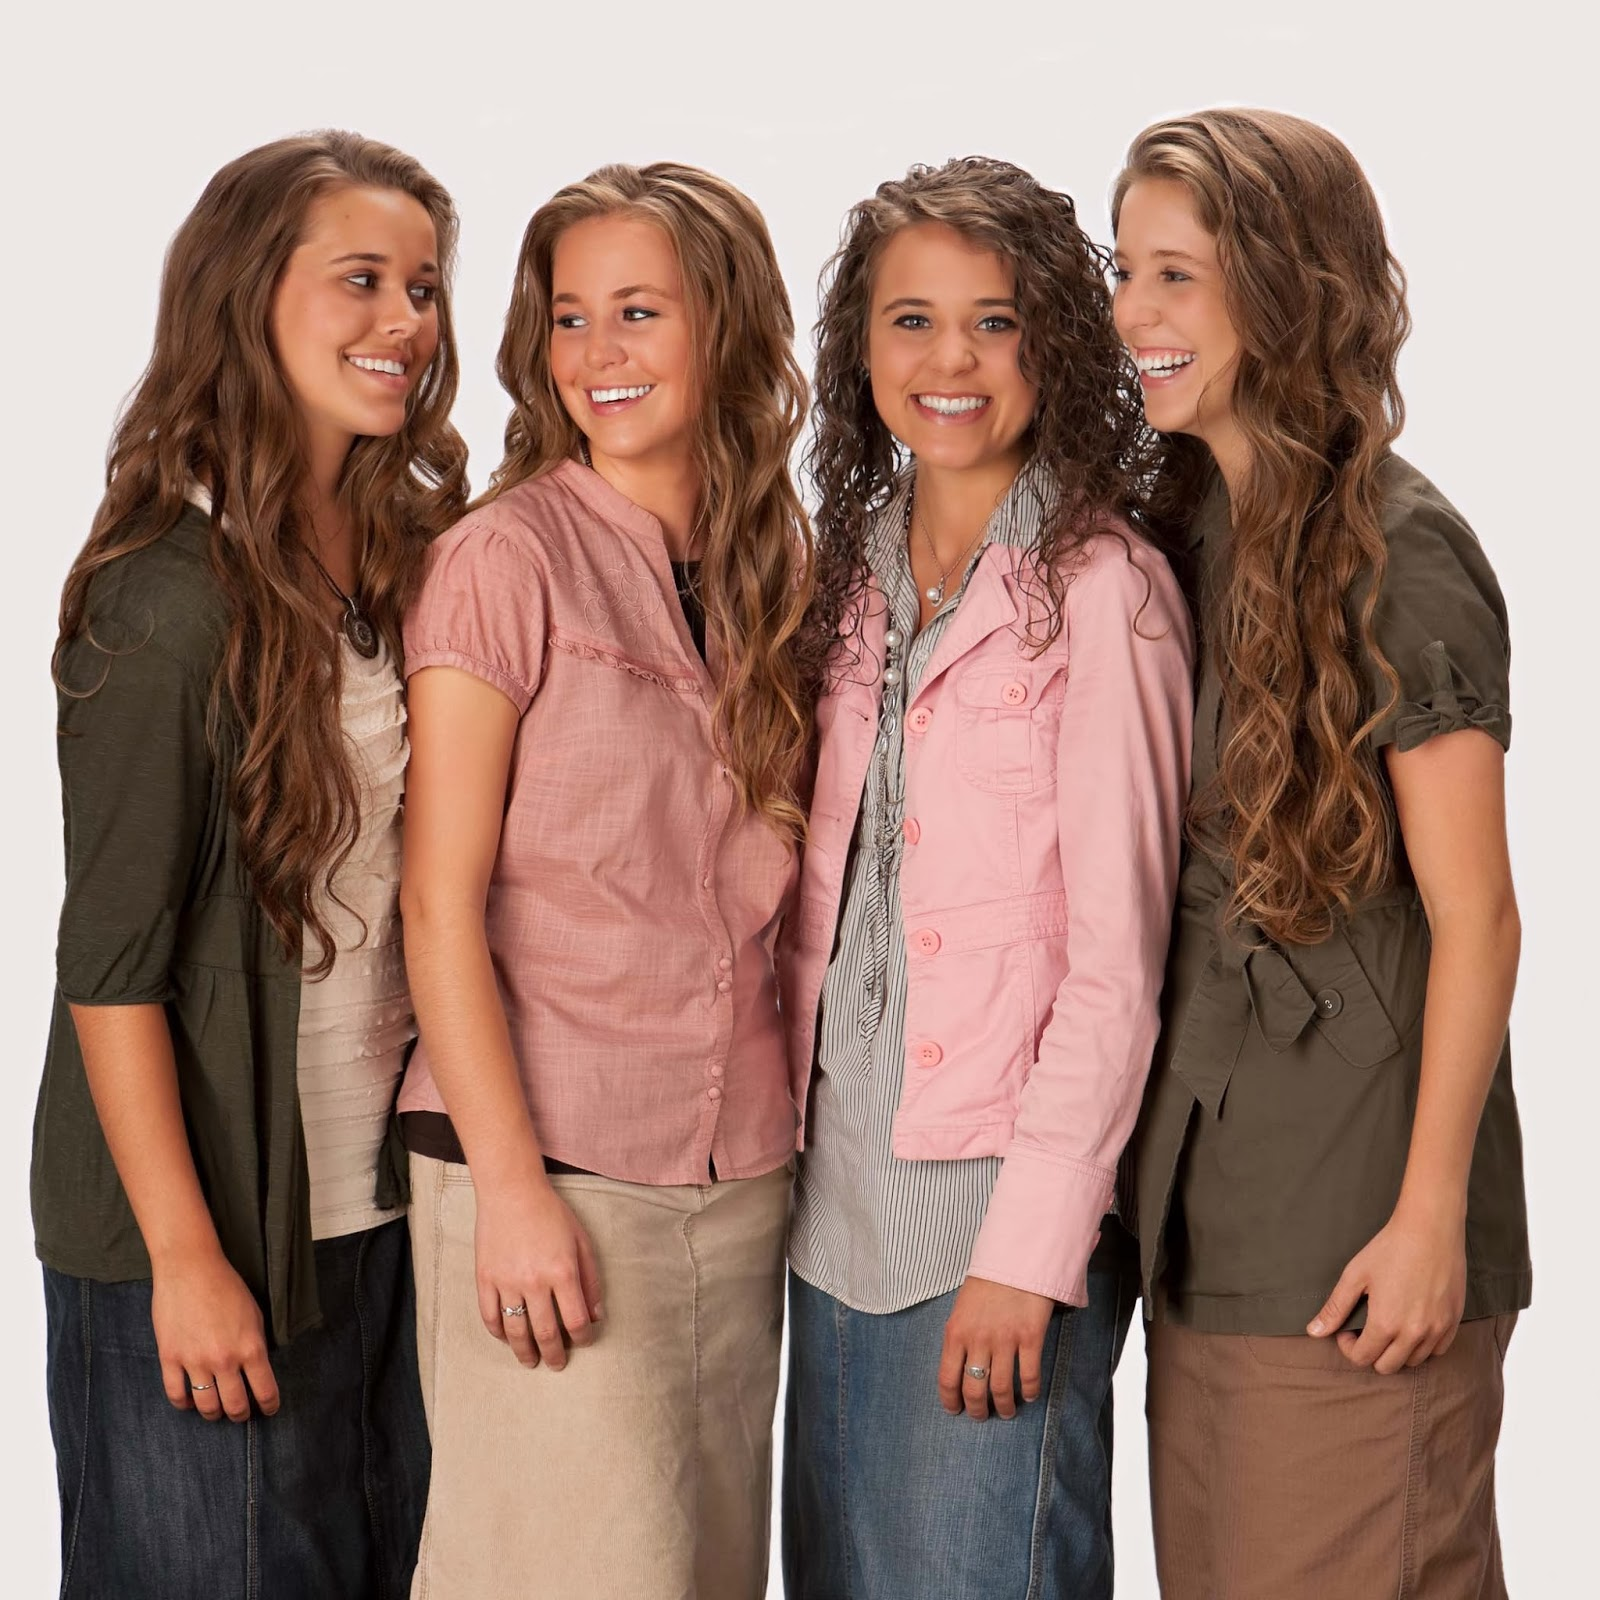 As we announced on Saturday, Growing Up Duggar is now available for